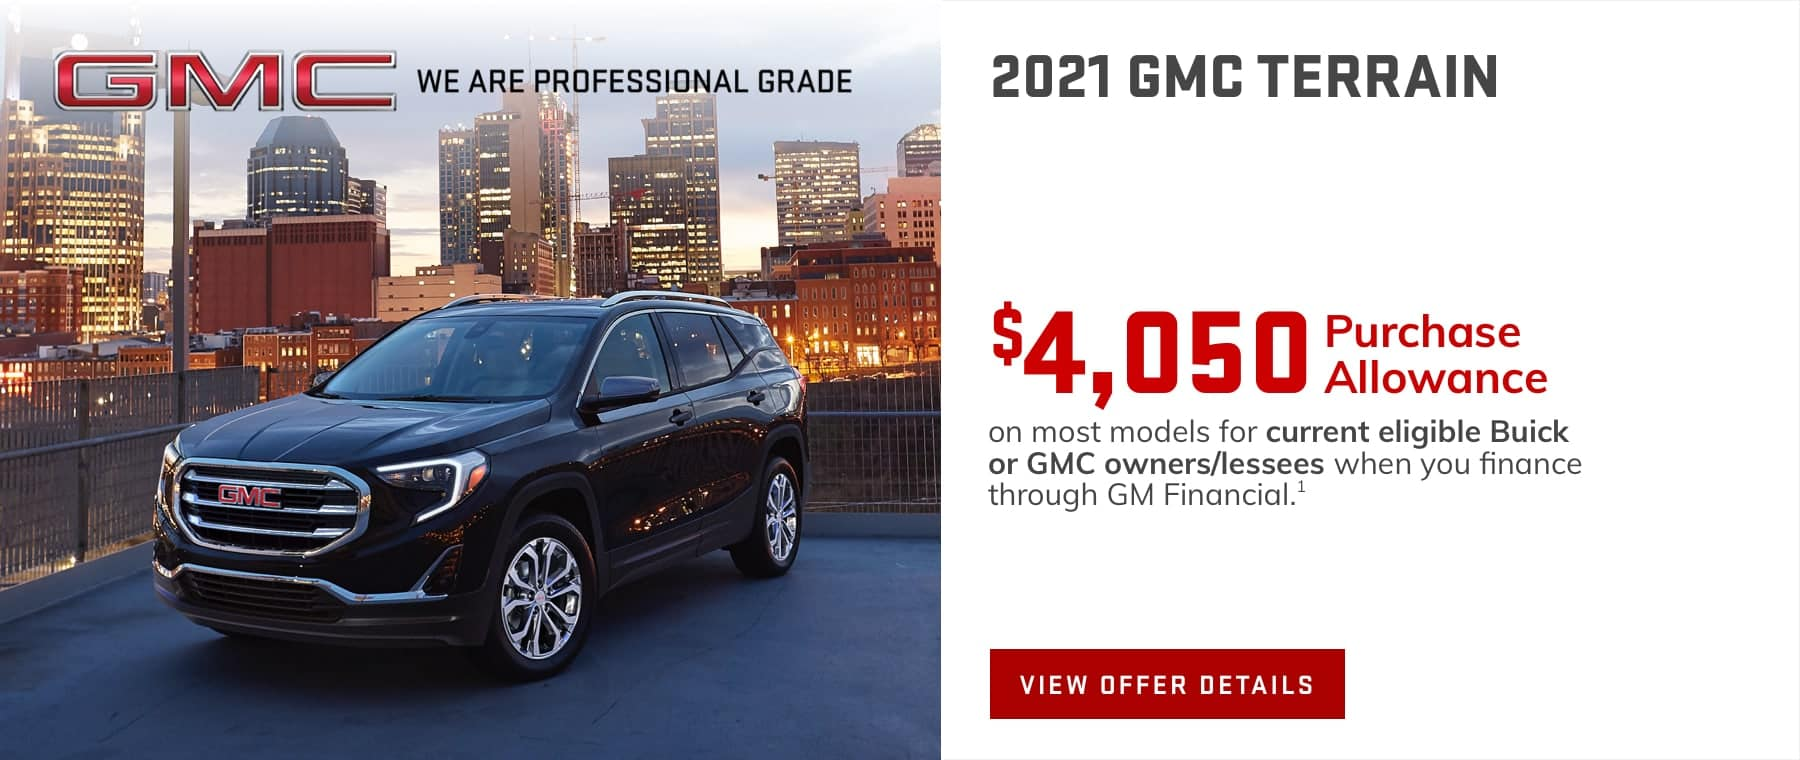 $4,050 Purchase Allowance on most models for current eligible Buick or GMC owners/lessees when you finance through GM Financial.1